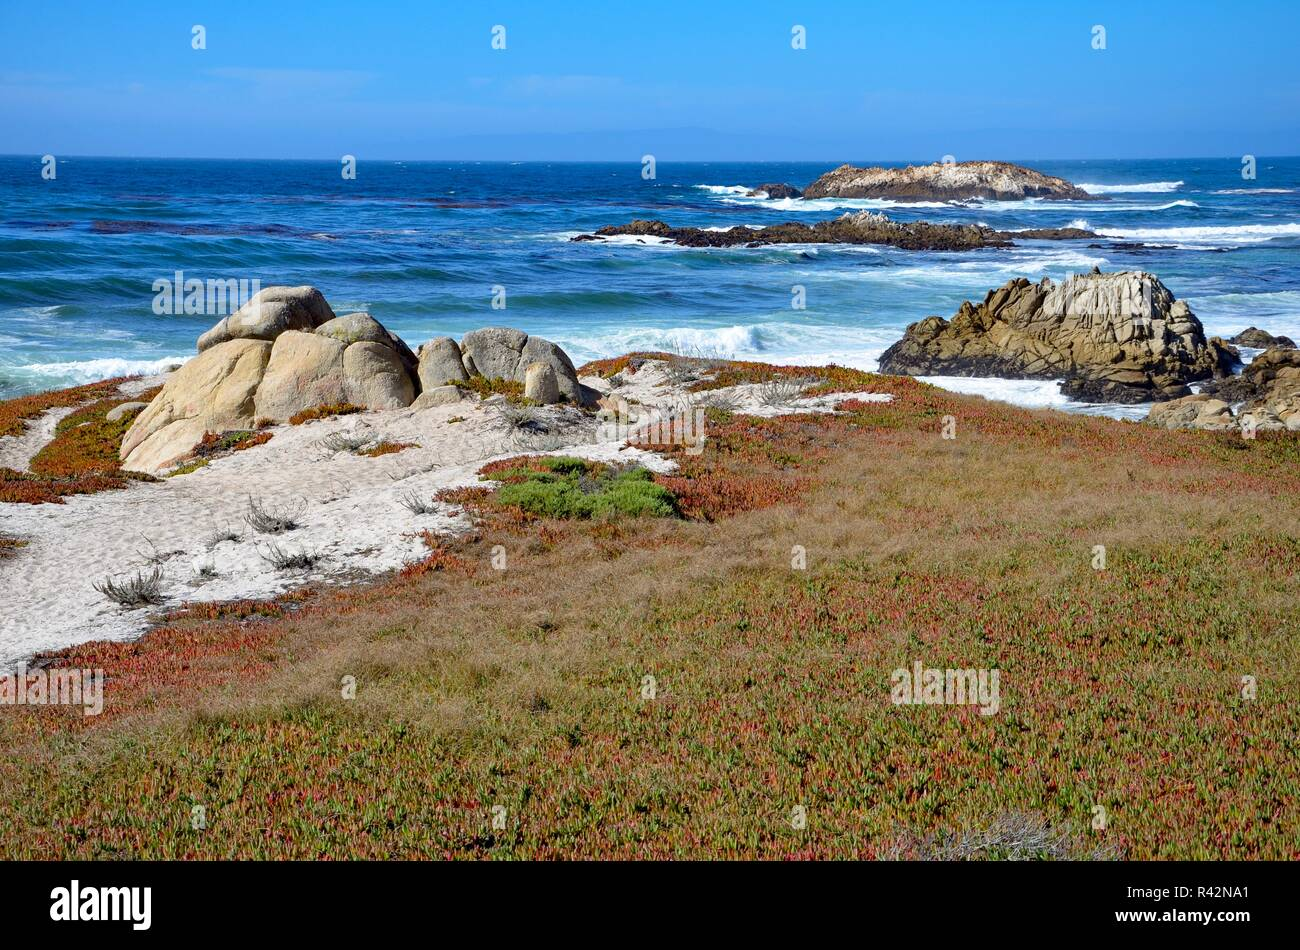 Monterey Peninsula near Pebble Beach in California, coast view towards the Pacific ocean, rocky coast and colorful plants on white sand, September Stock Photo